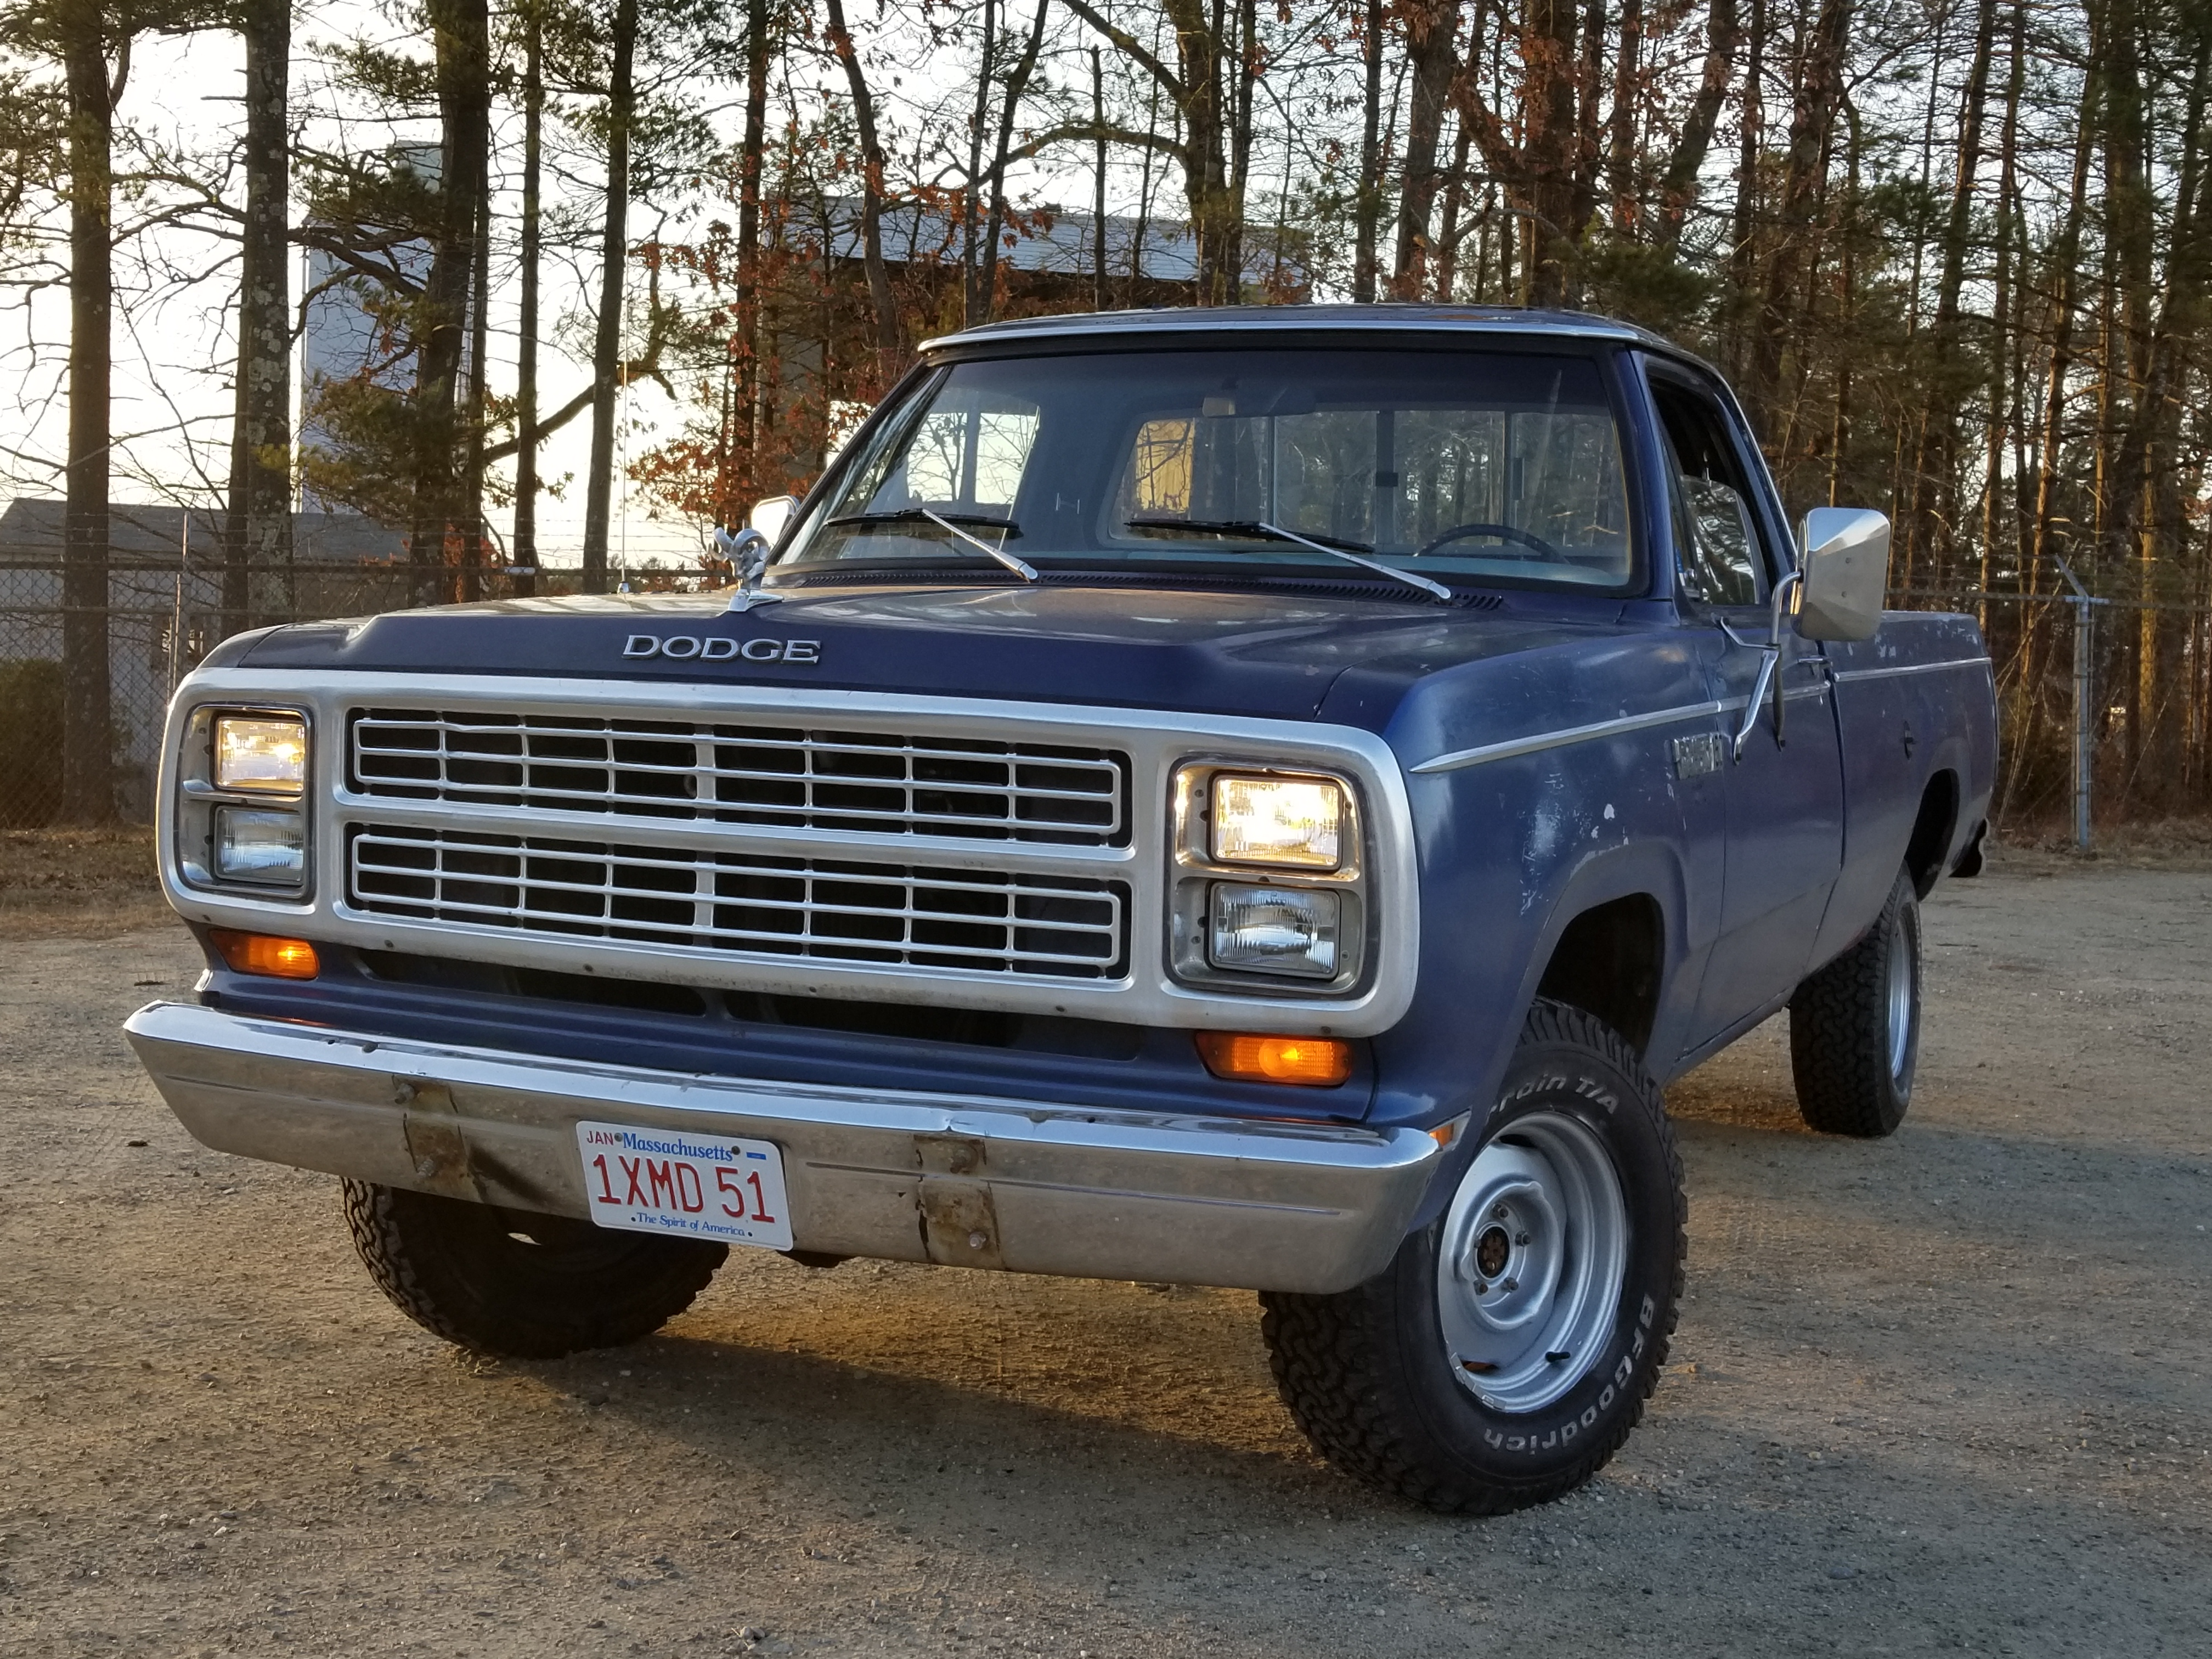 Introducing Project Power Laggin': a 1979 Dodge W150 Power Wagon For Weekend Workhorse Duty!!